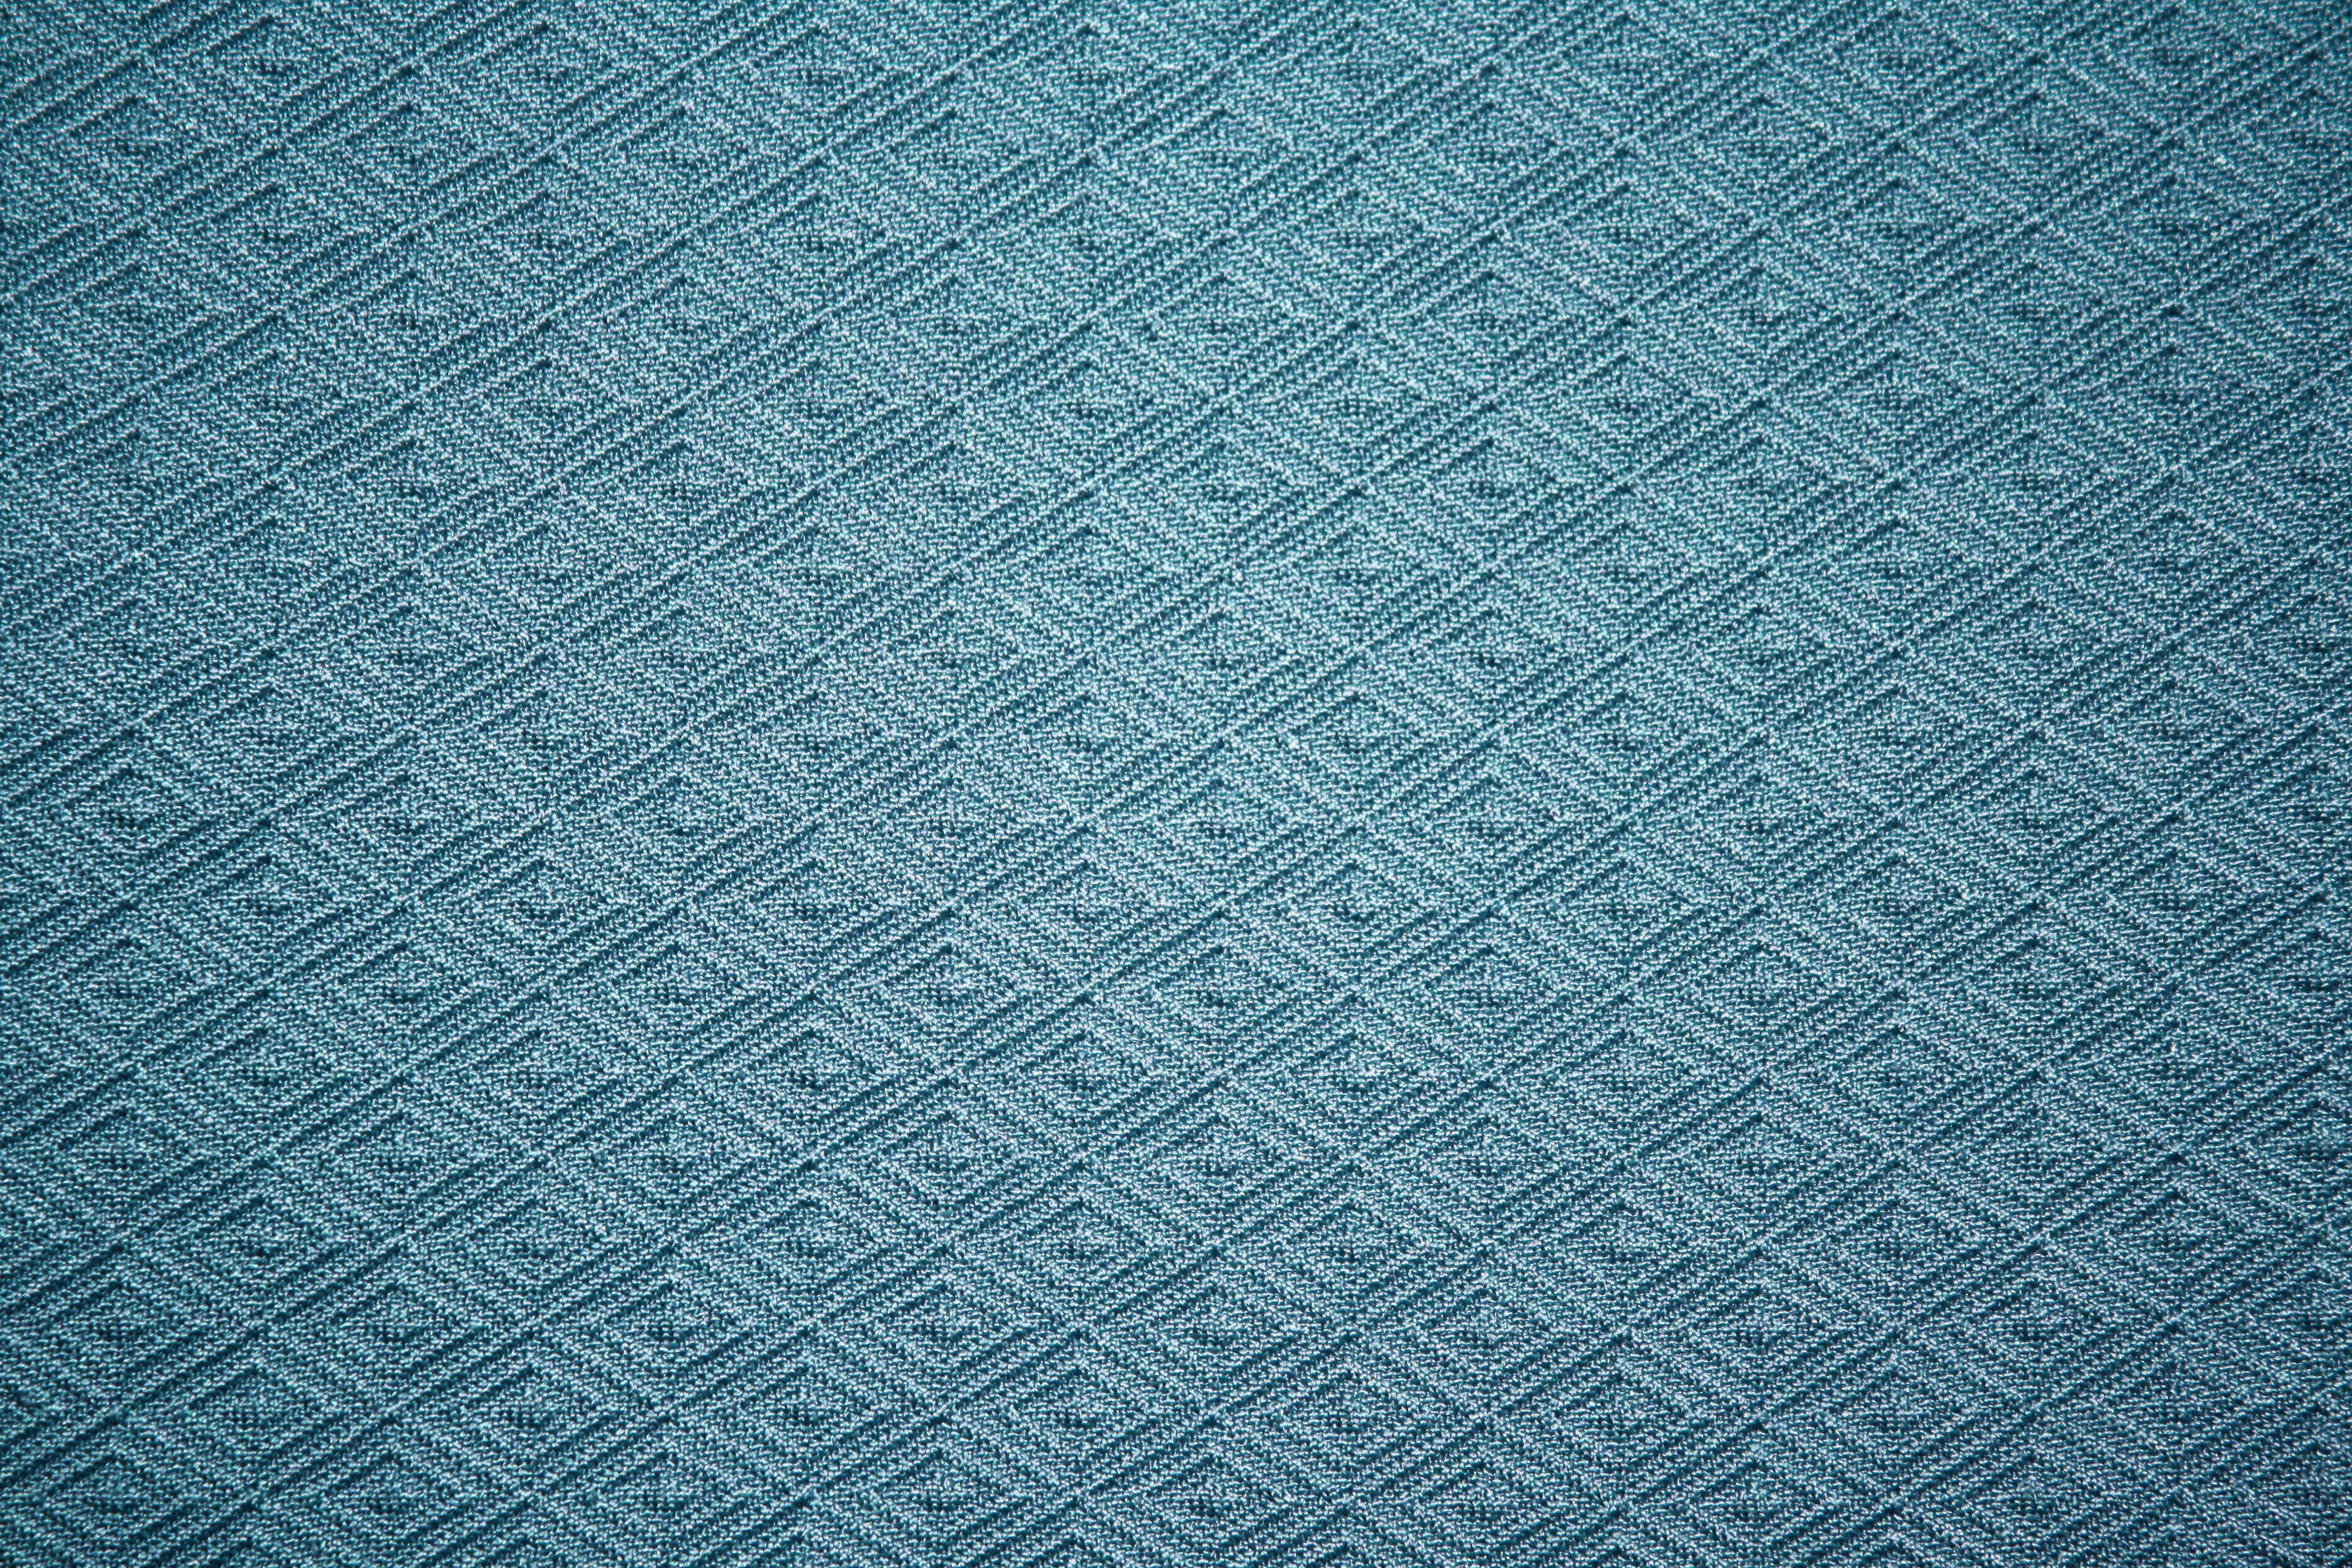 Teal Knit Fabric with Diamond Pattern Texture Picture | Free ...